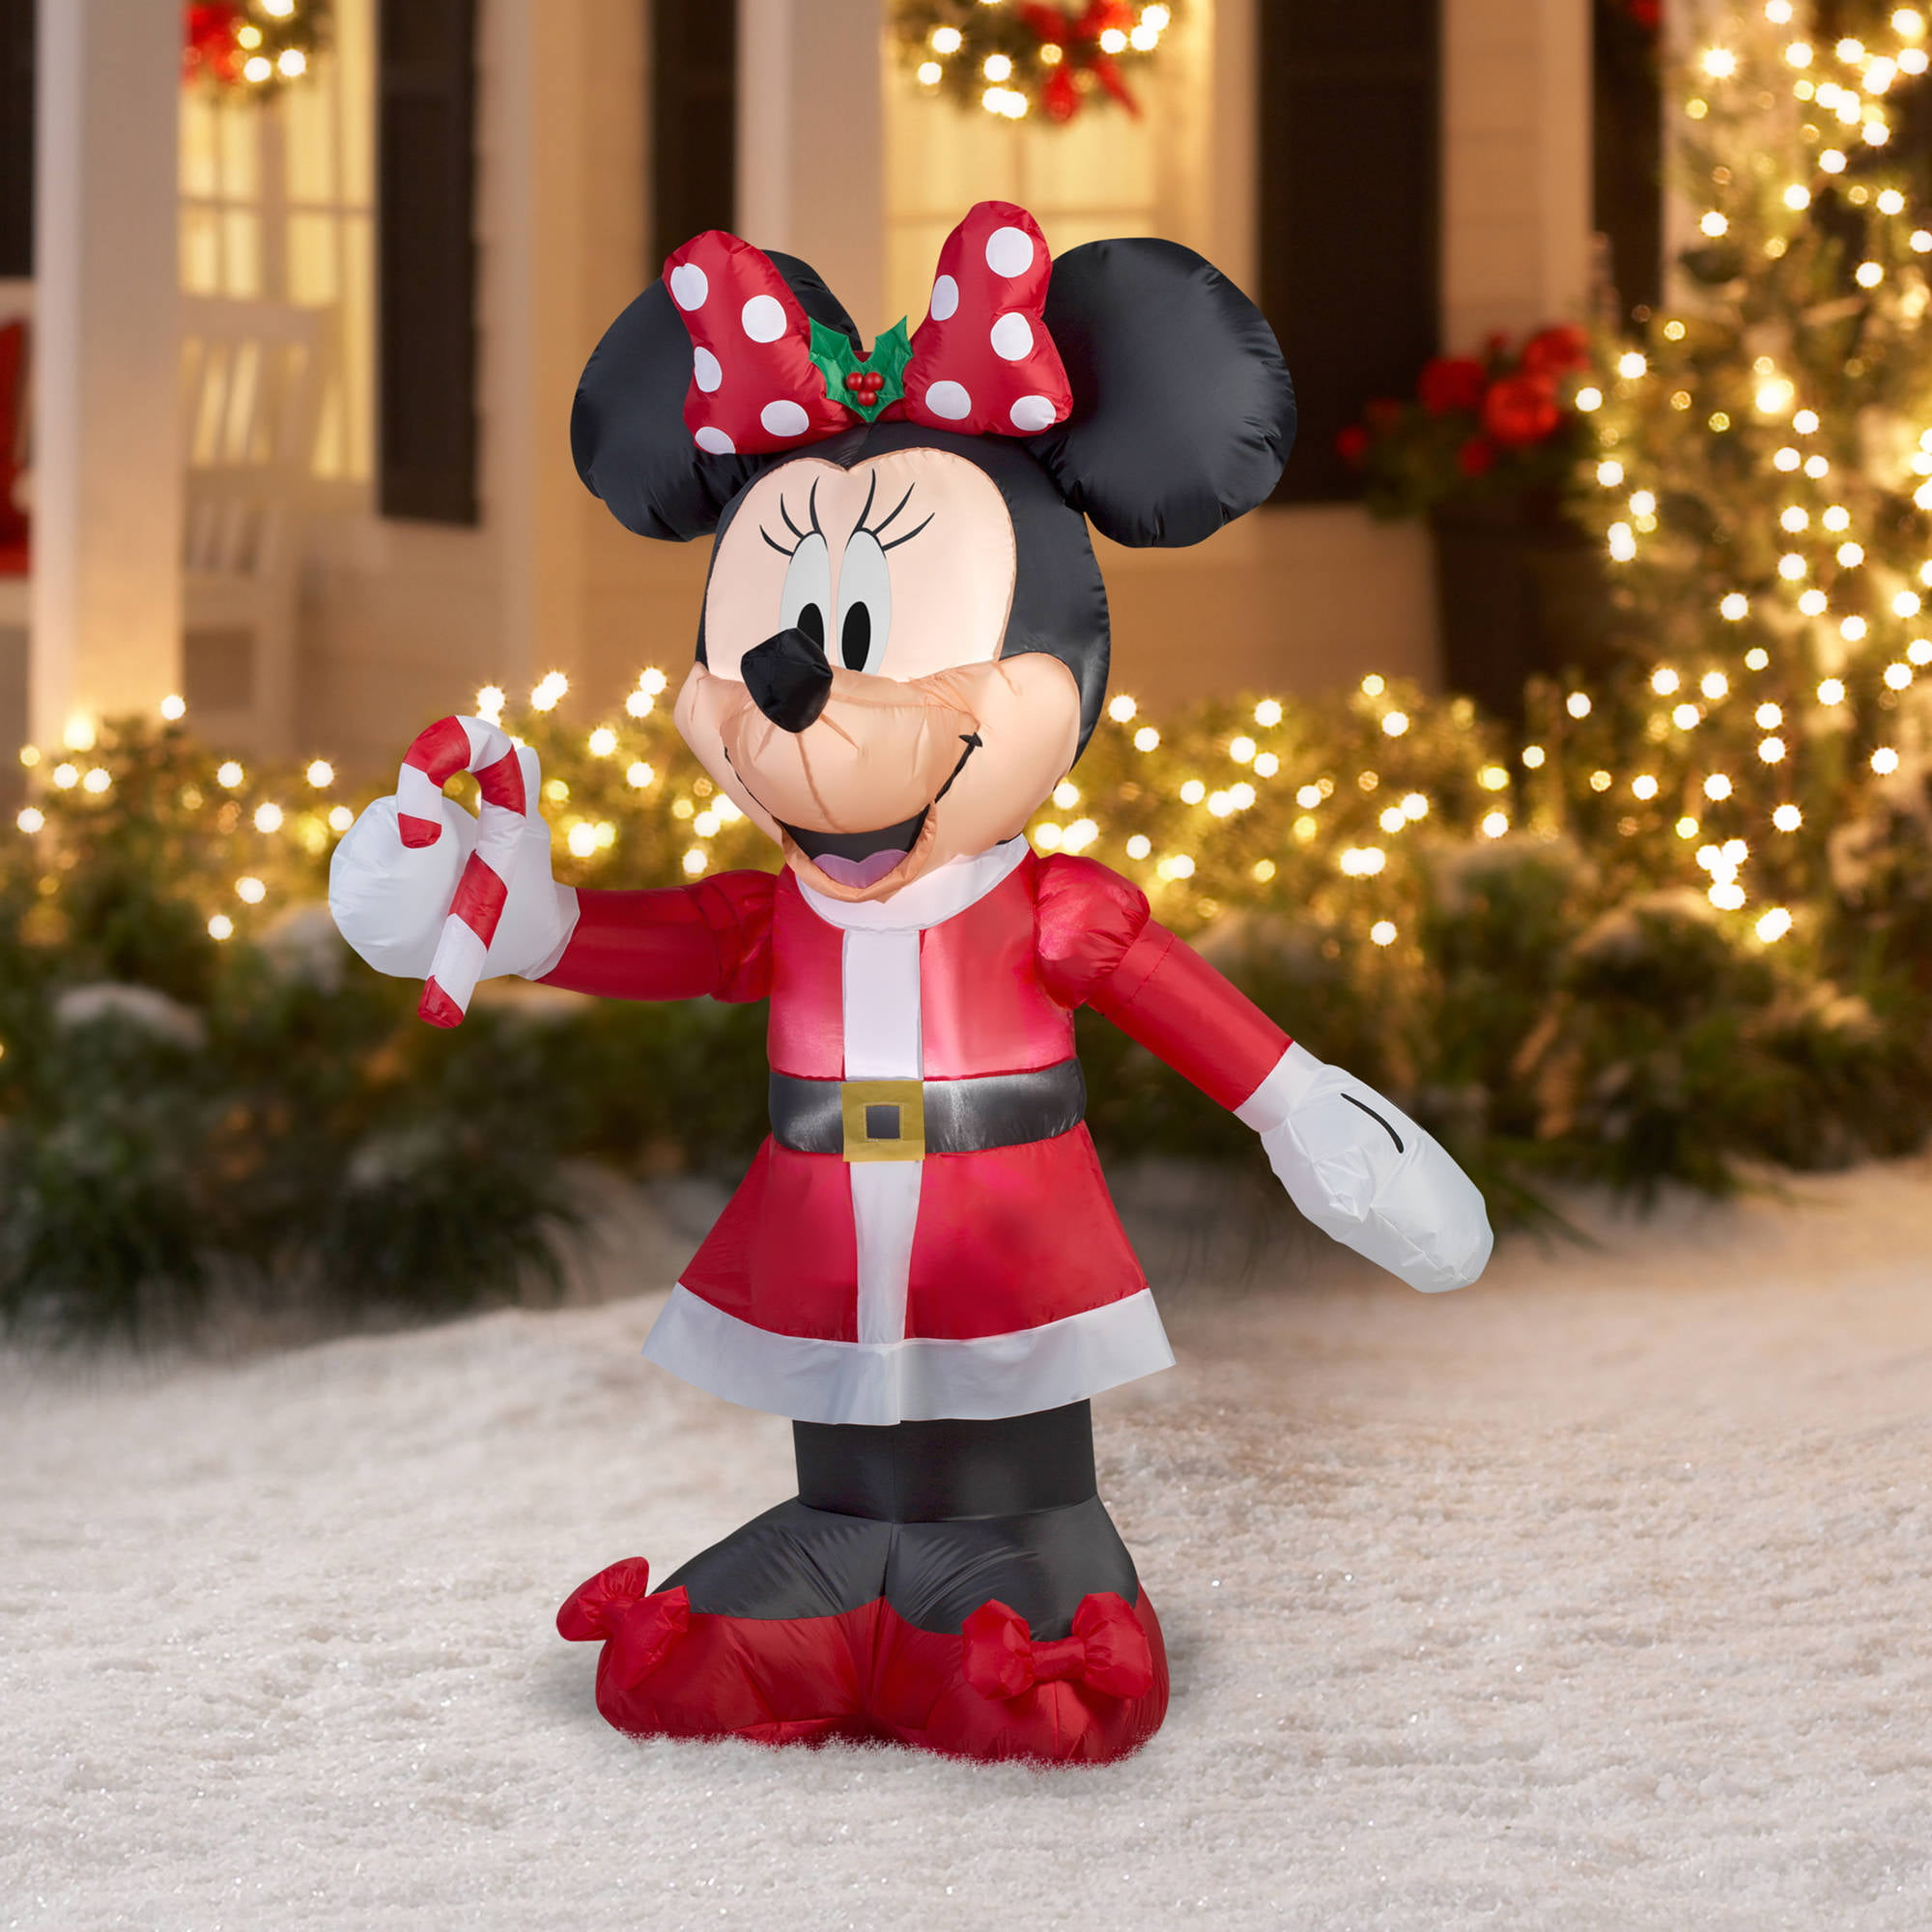 gemmy airblown christmas inflatables 5 disney minnie with candy cane walmartcom - Mickey And Minnie Christmas Decorations